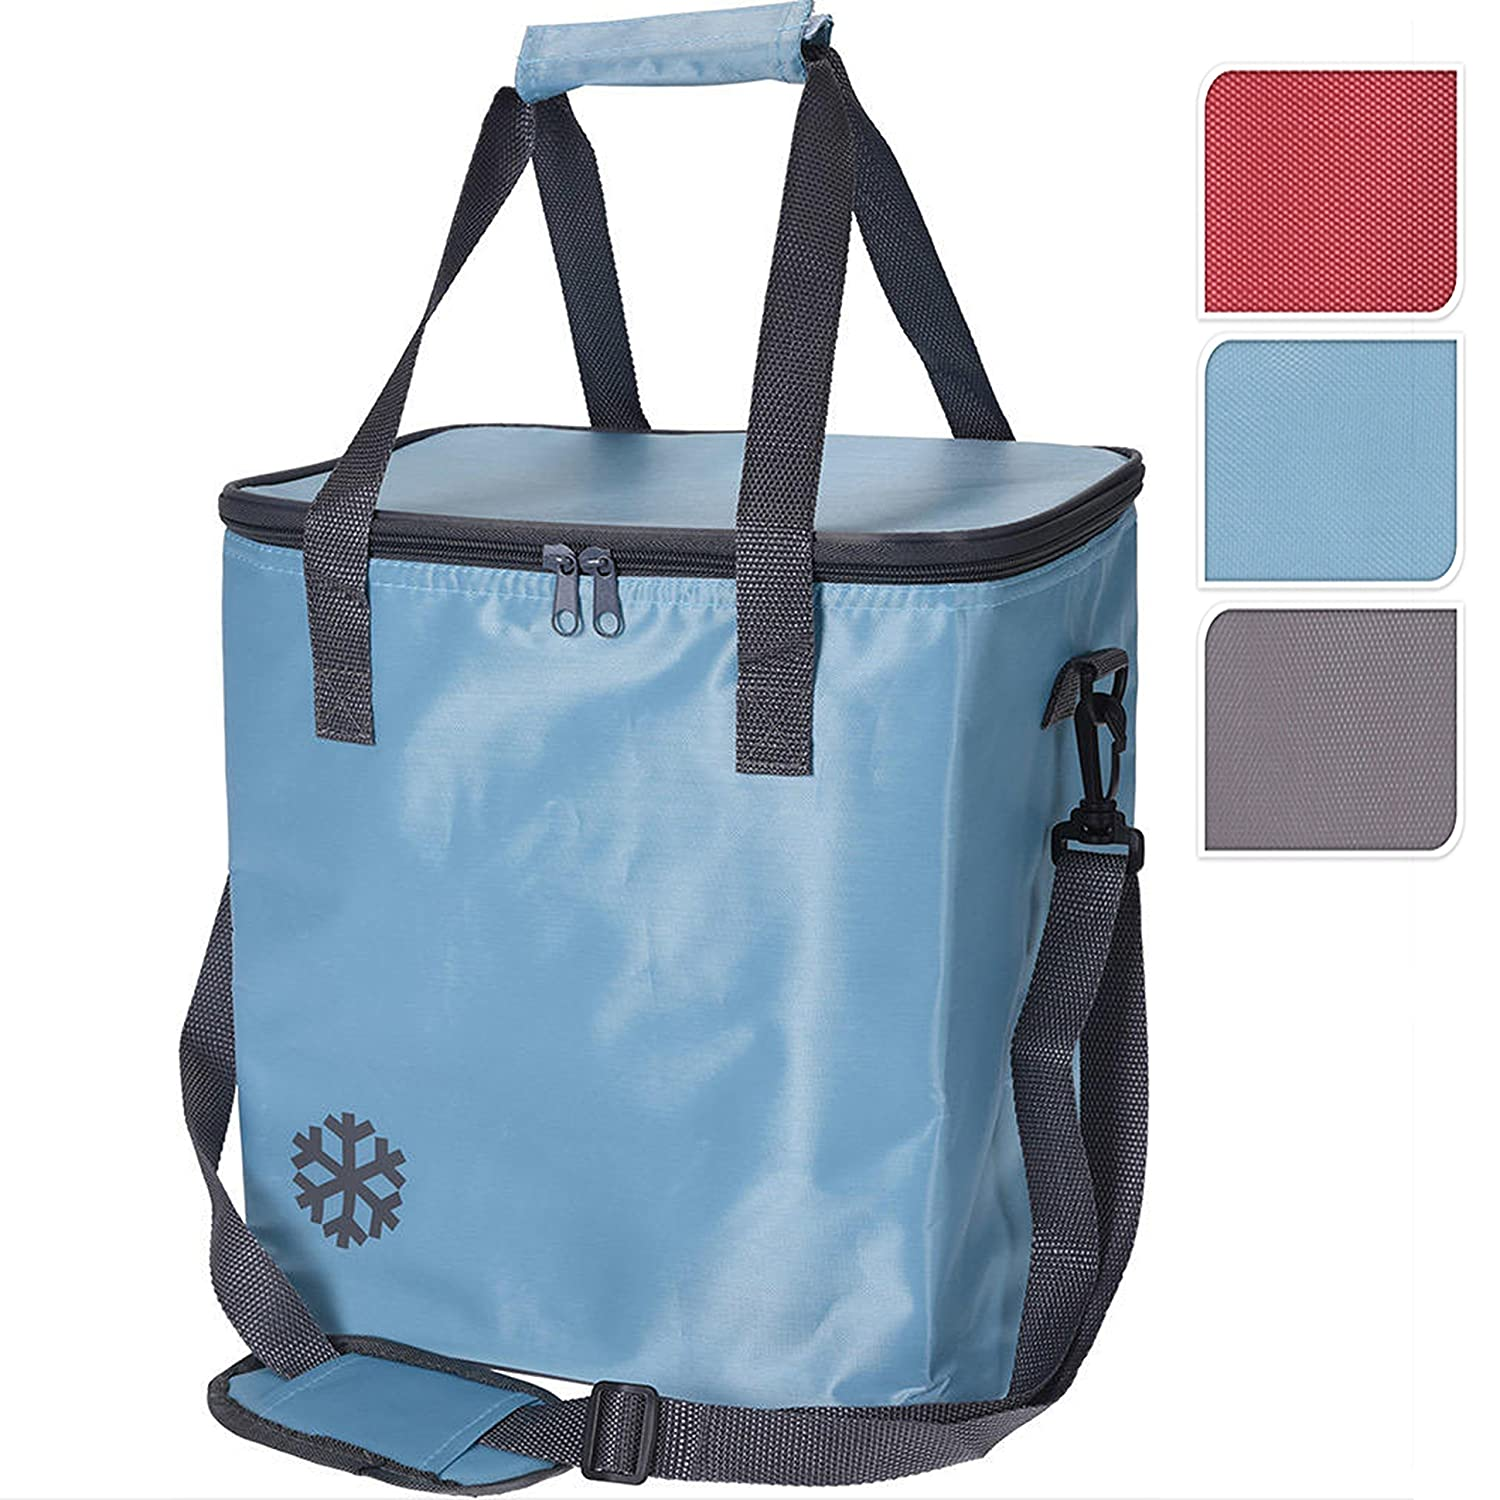 GEEZY 24 Ltr Insulated Compact Handy Cool Bag Camping Picnic Cooler Box Lunch